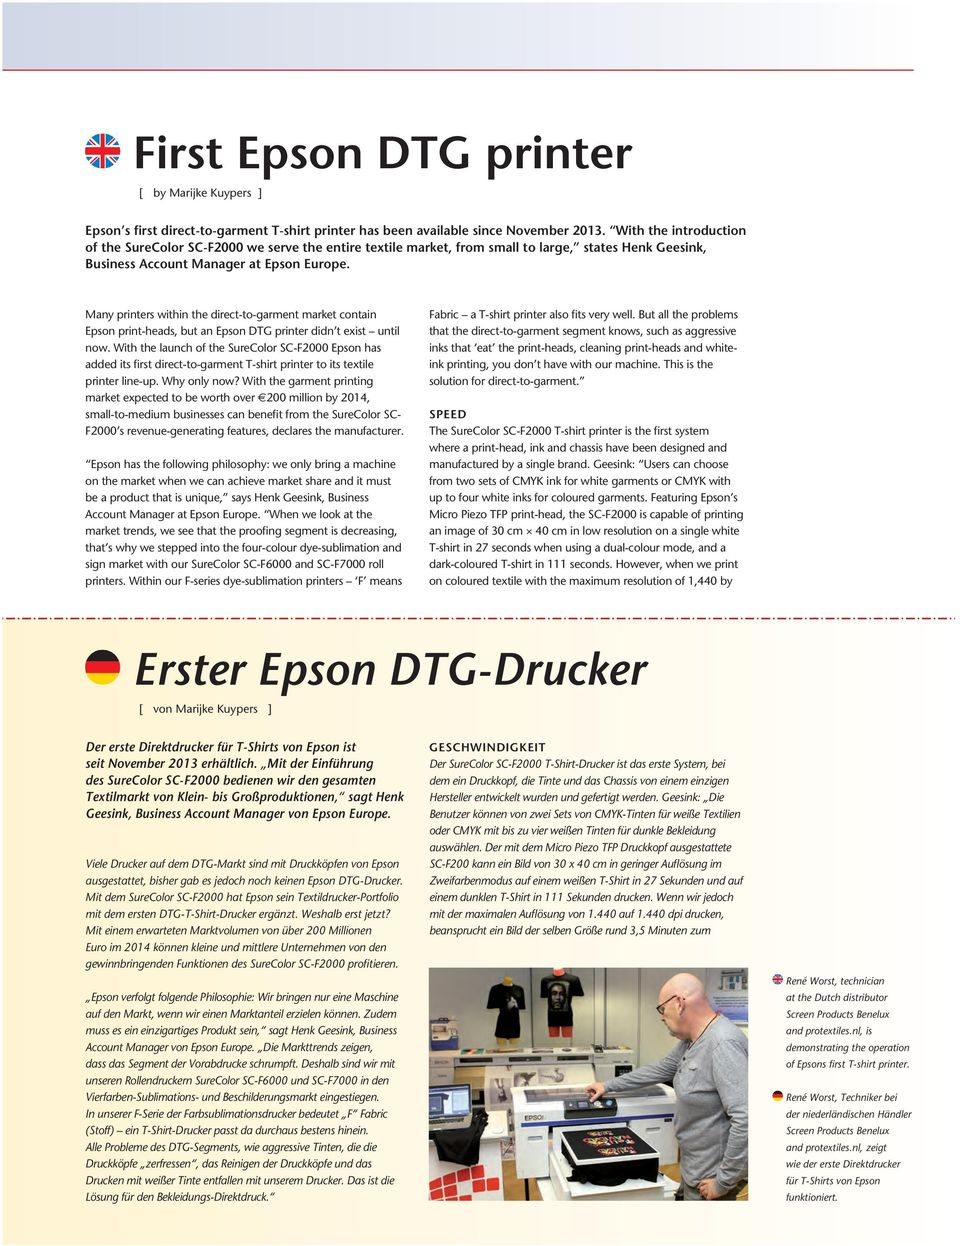 Many printers within the direct-to-garment market contain Epson print-heads, but an Epson DTG printer didn t exist until now.